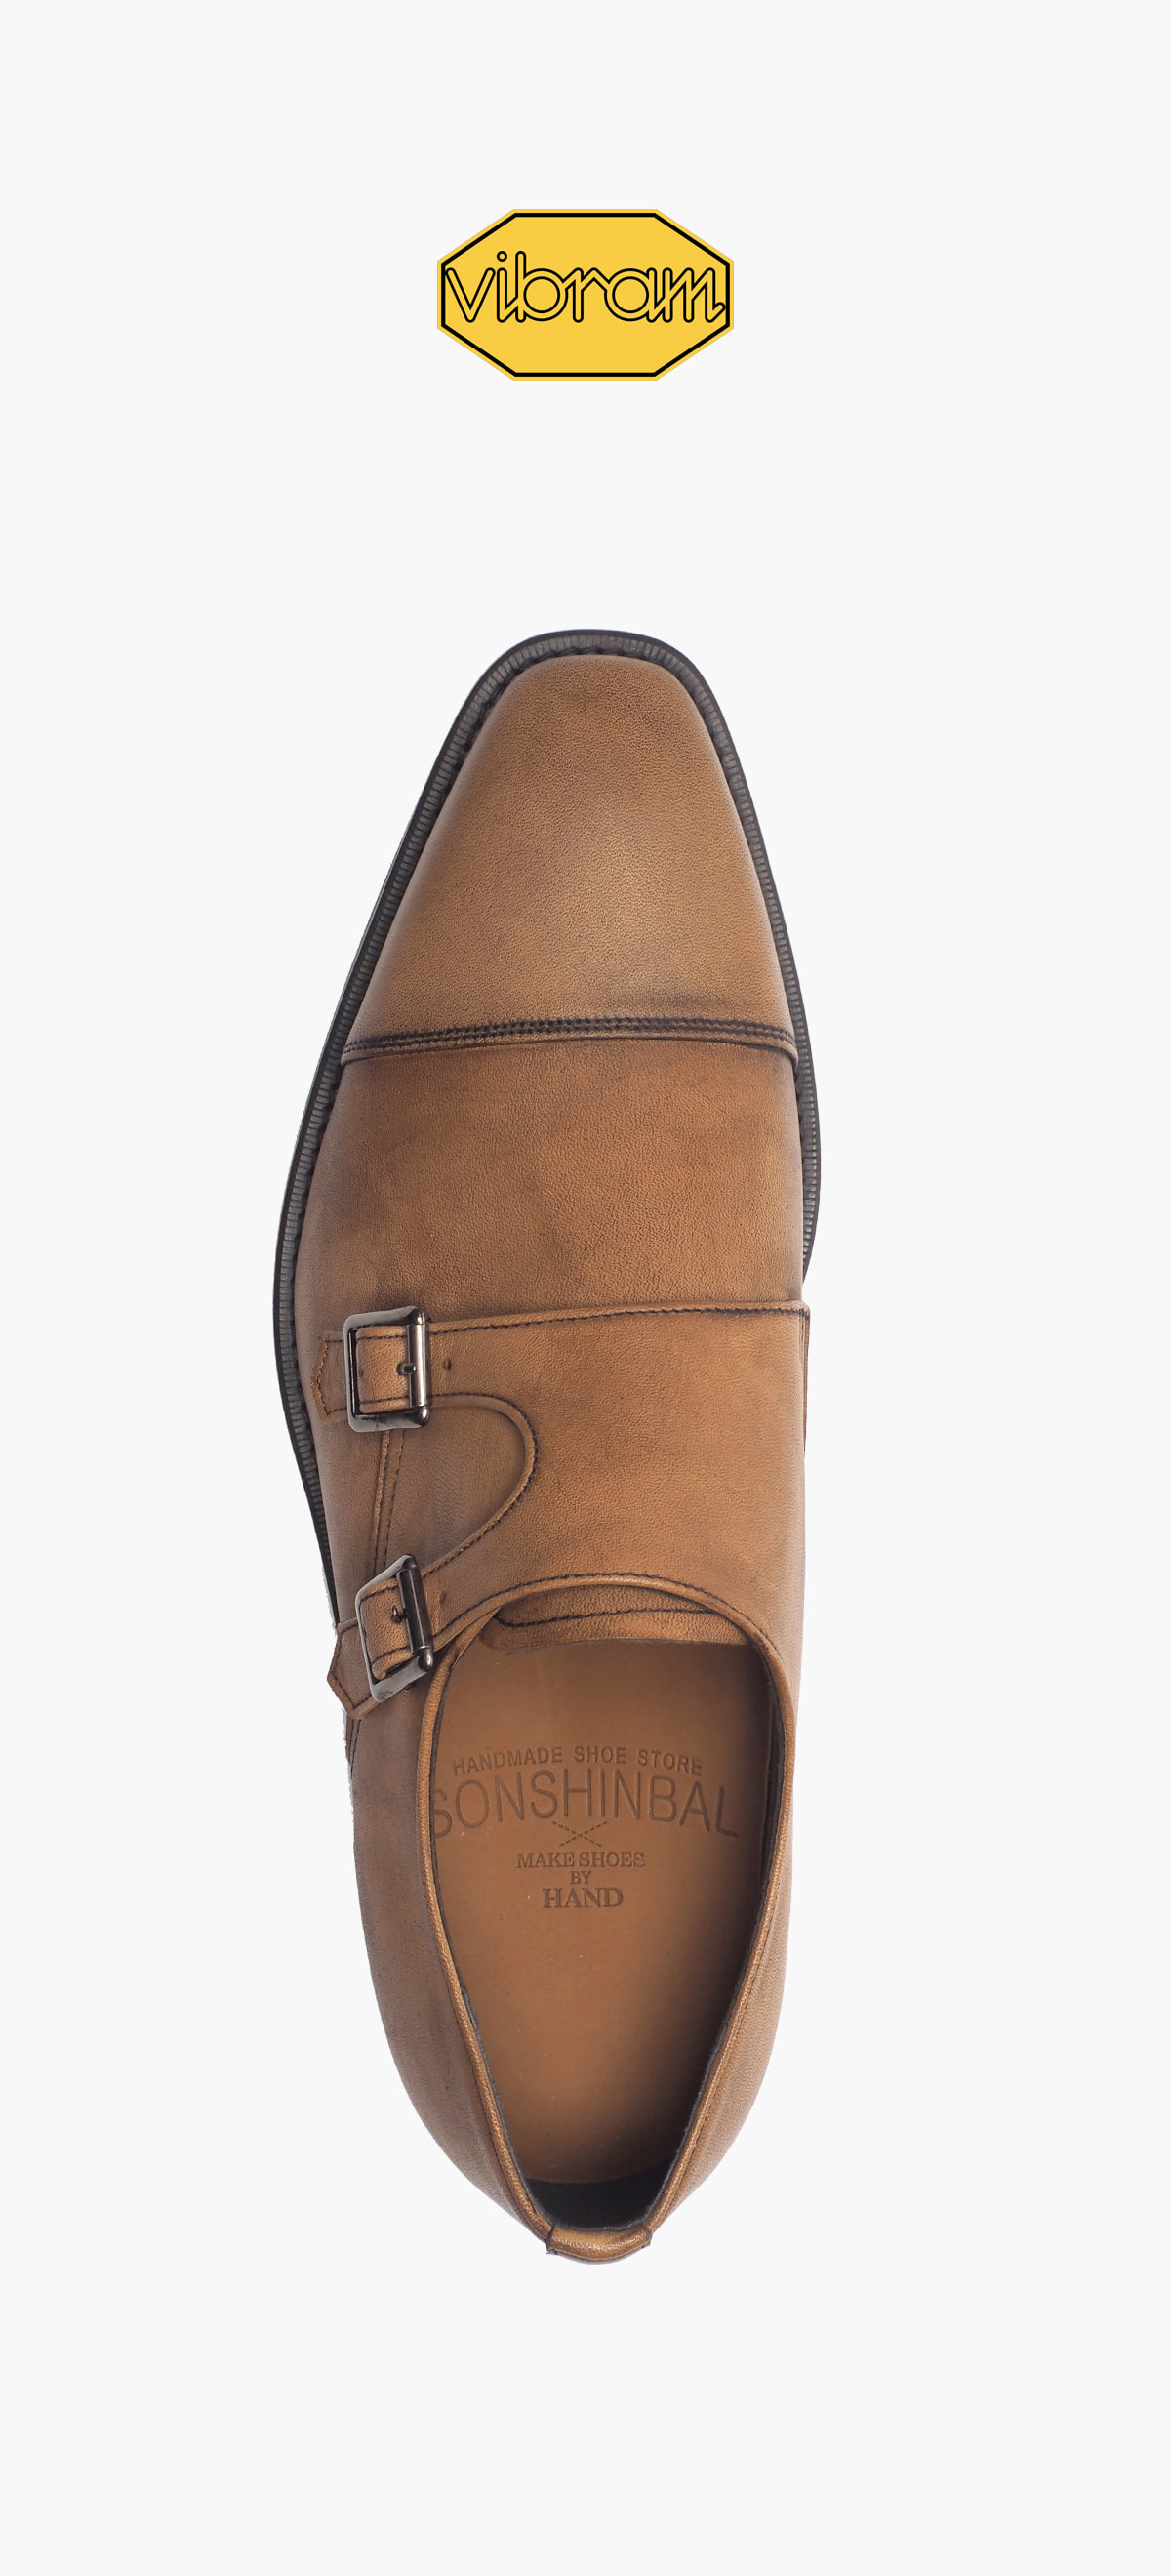 Monk Strap 8031-10 Brown Tanning